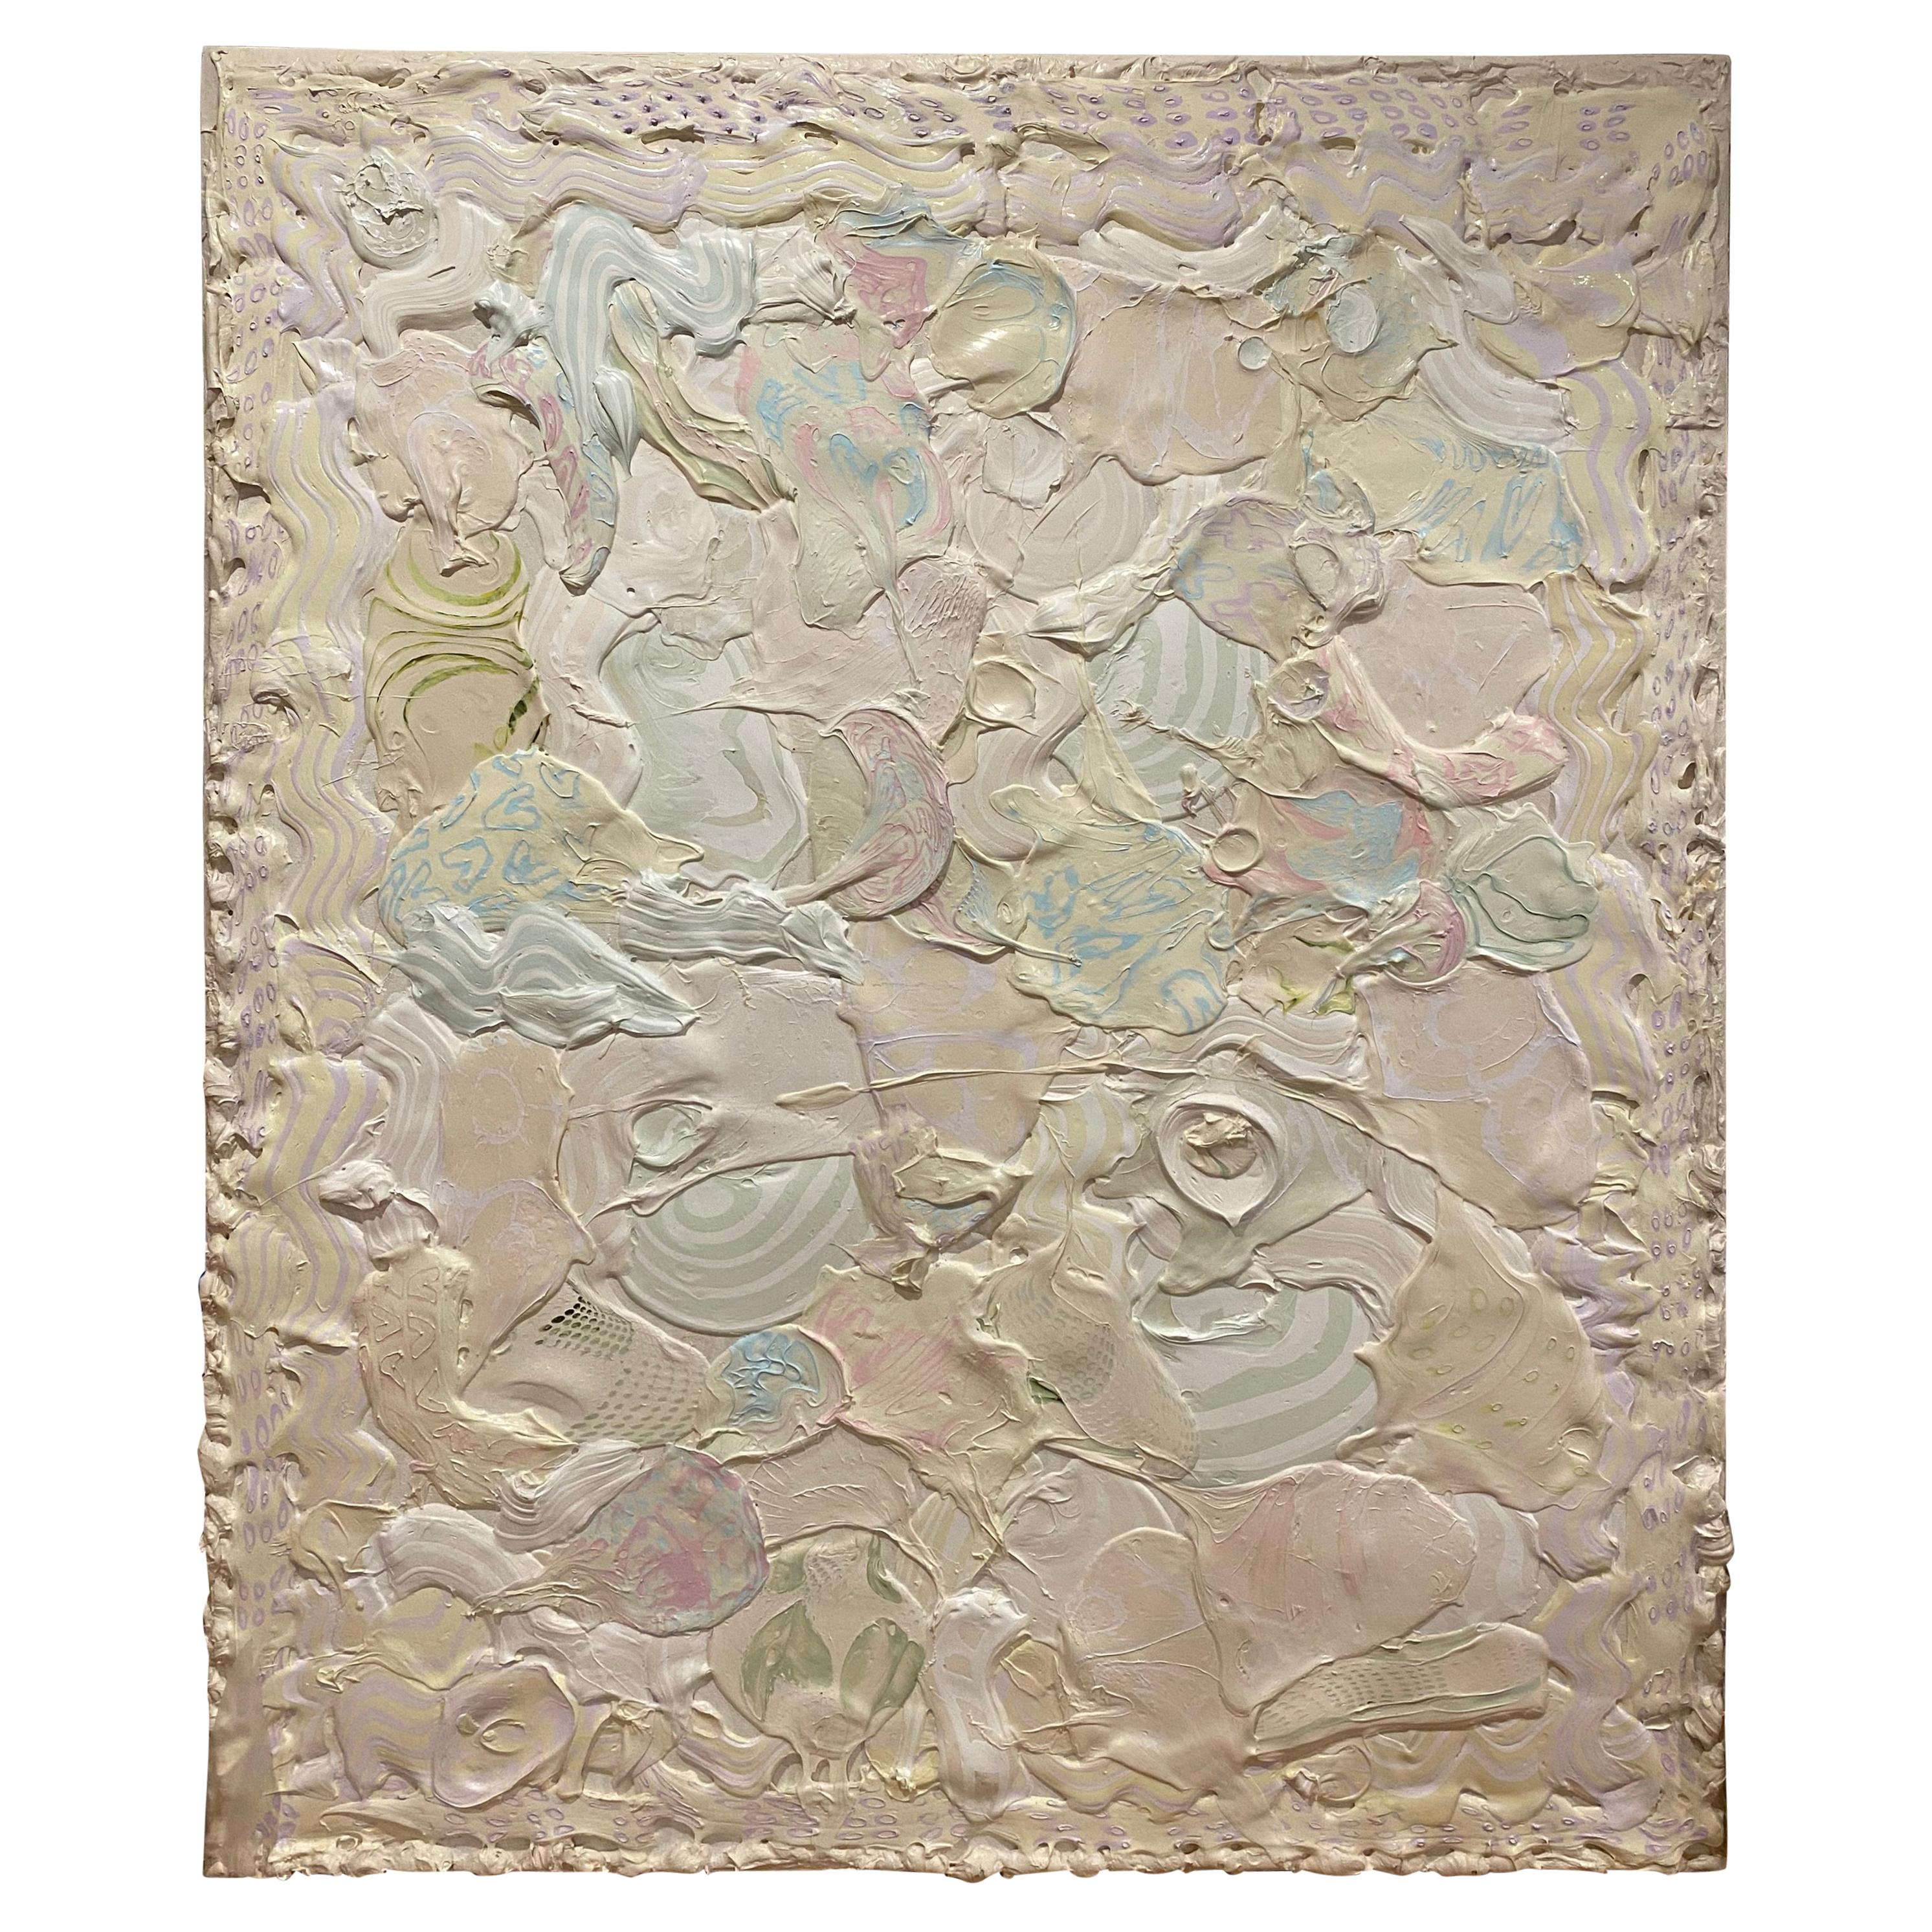 'Untitled, 2006' Abstract Acrylic Painting by Charles Andresen